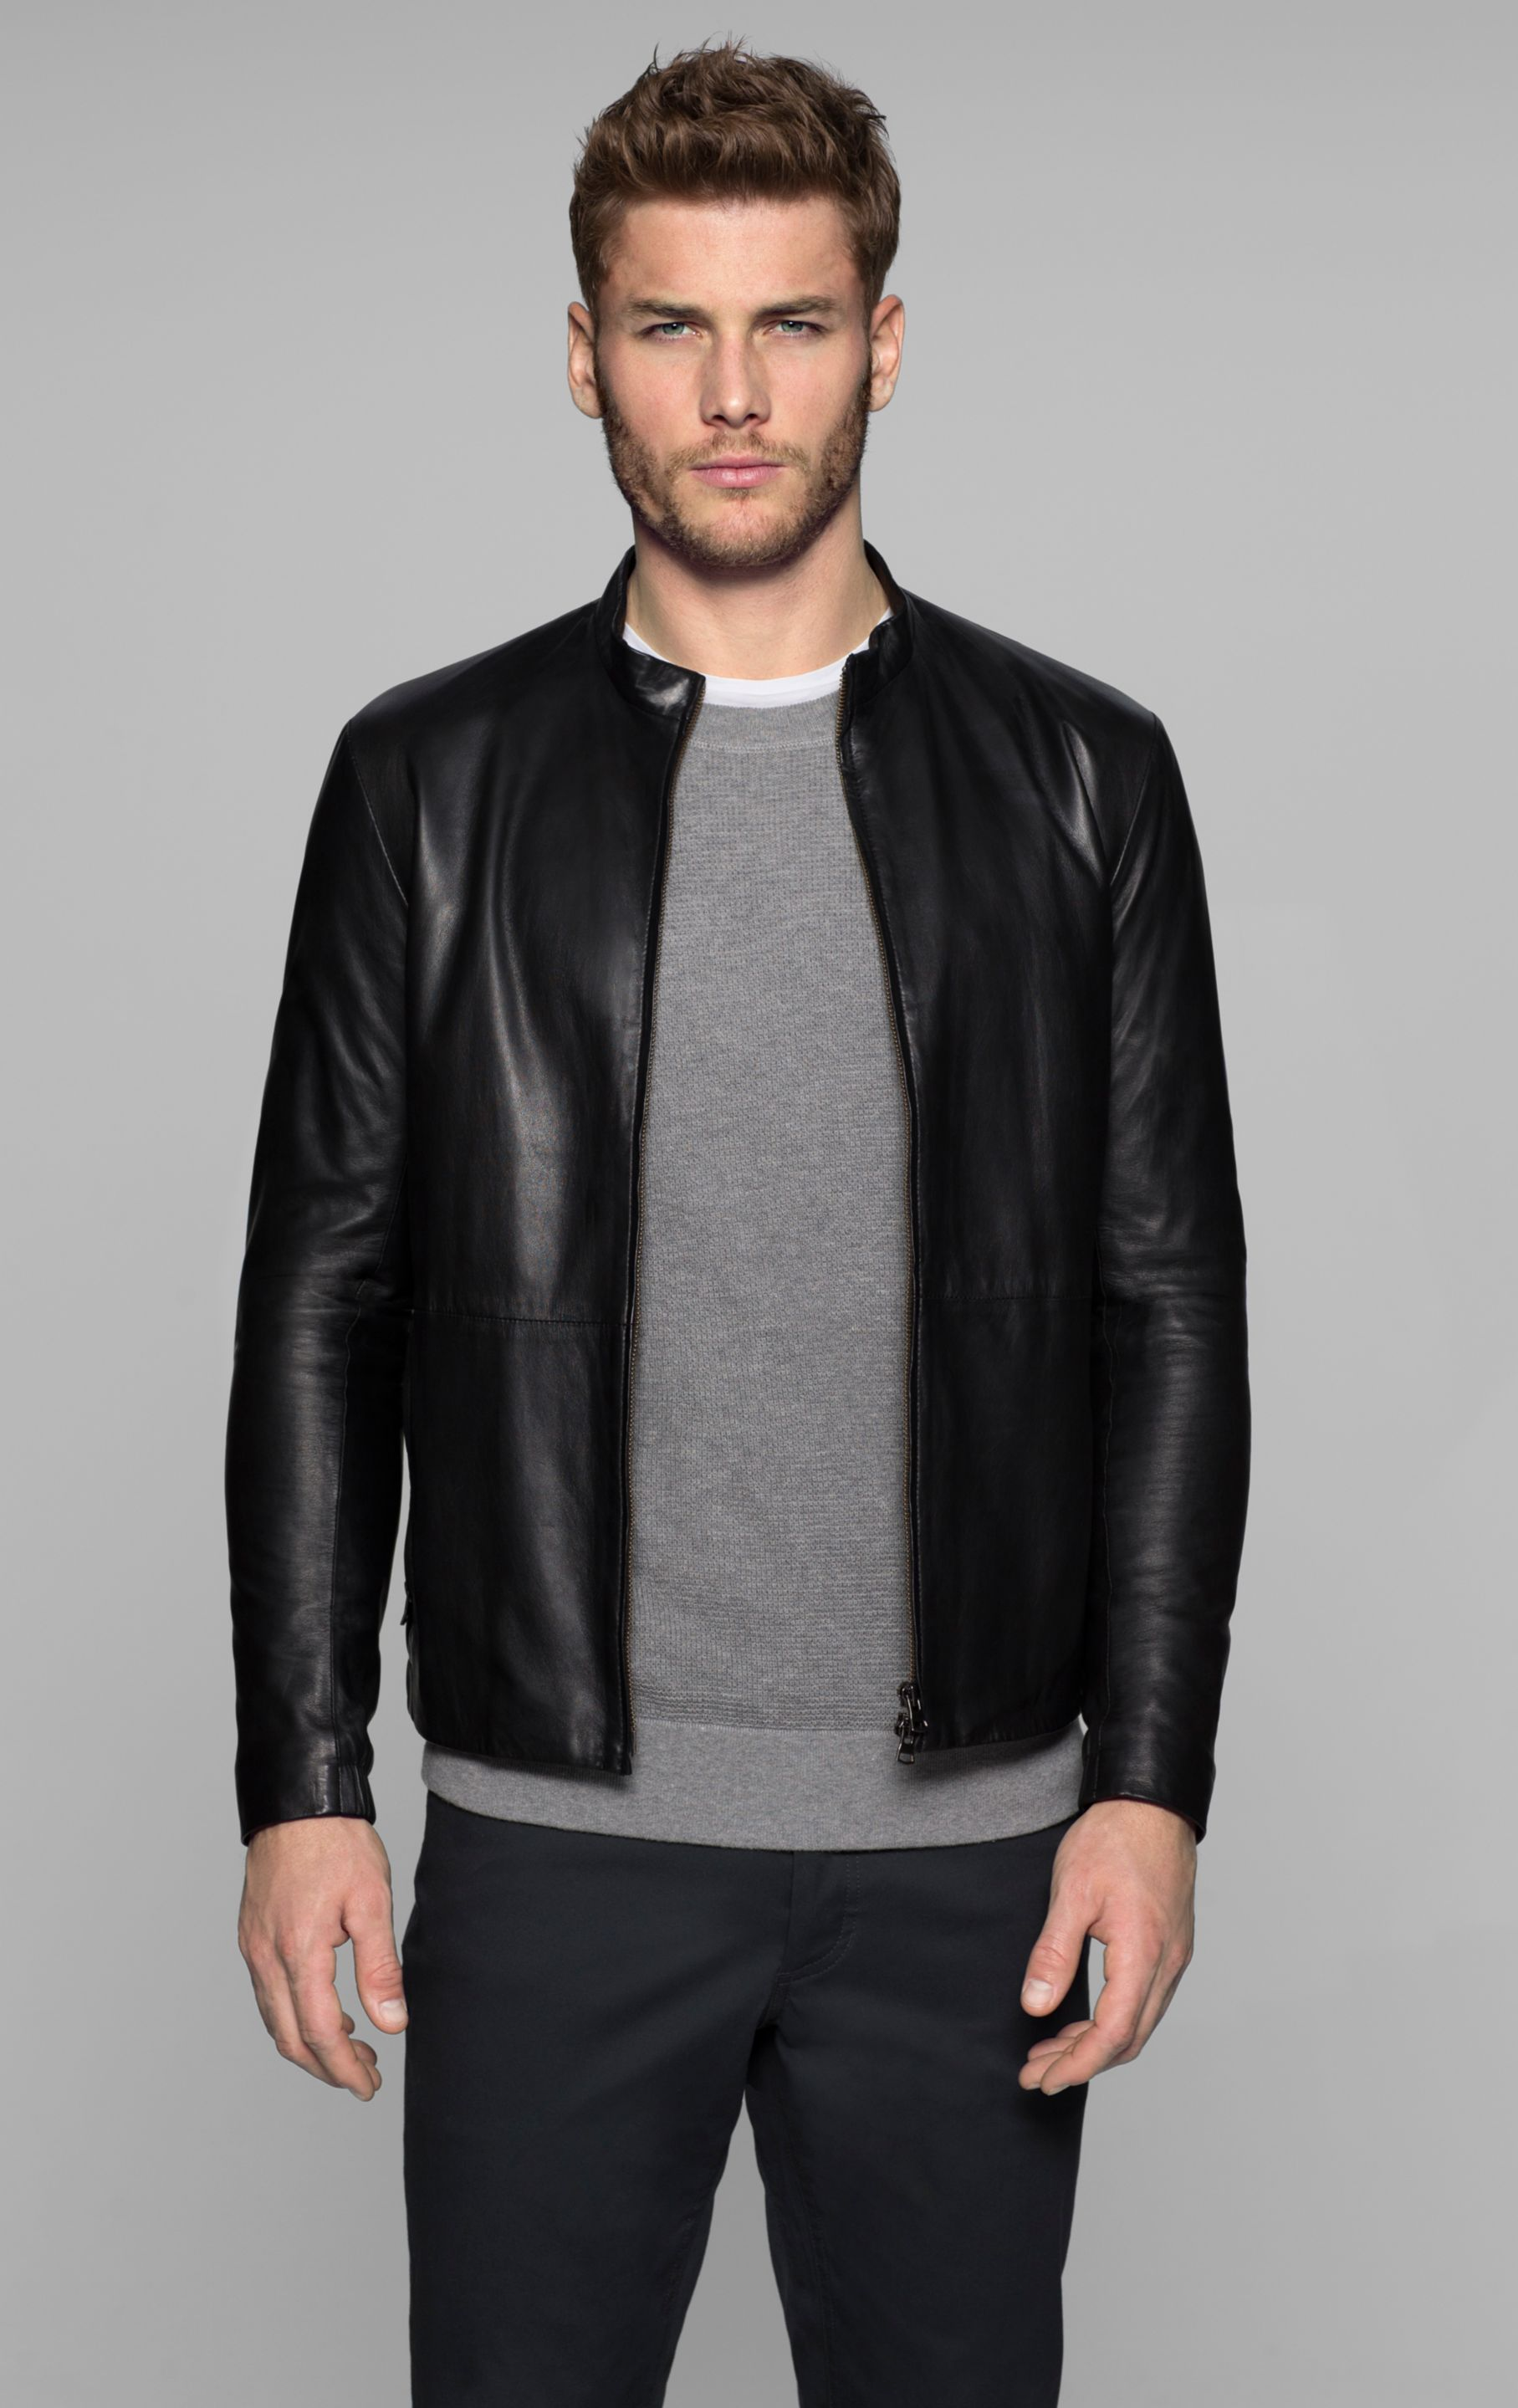 Theory Yisenia Tufts Shirt and Light Leather Jacket in Black (black